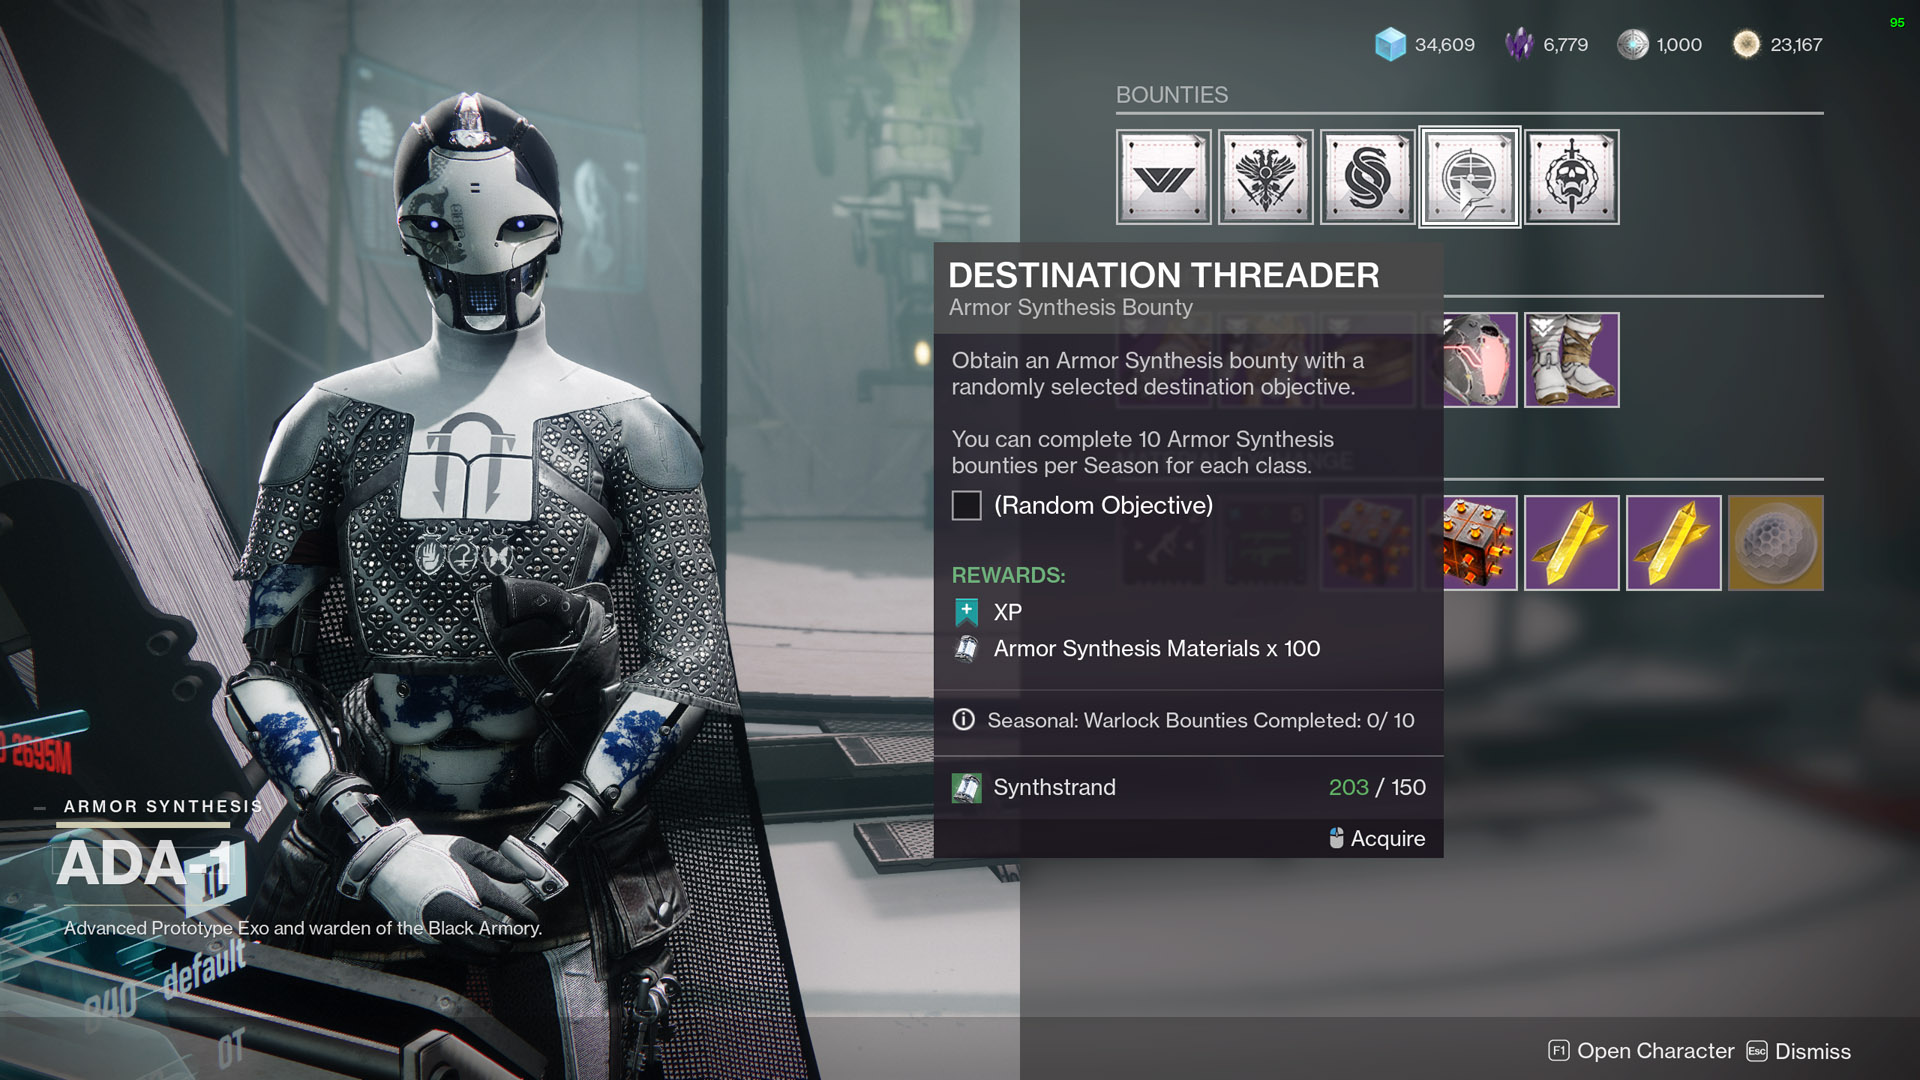 destiny 2 tying it all together purchase armor synthesis bounty